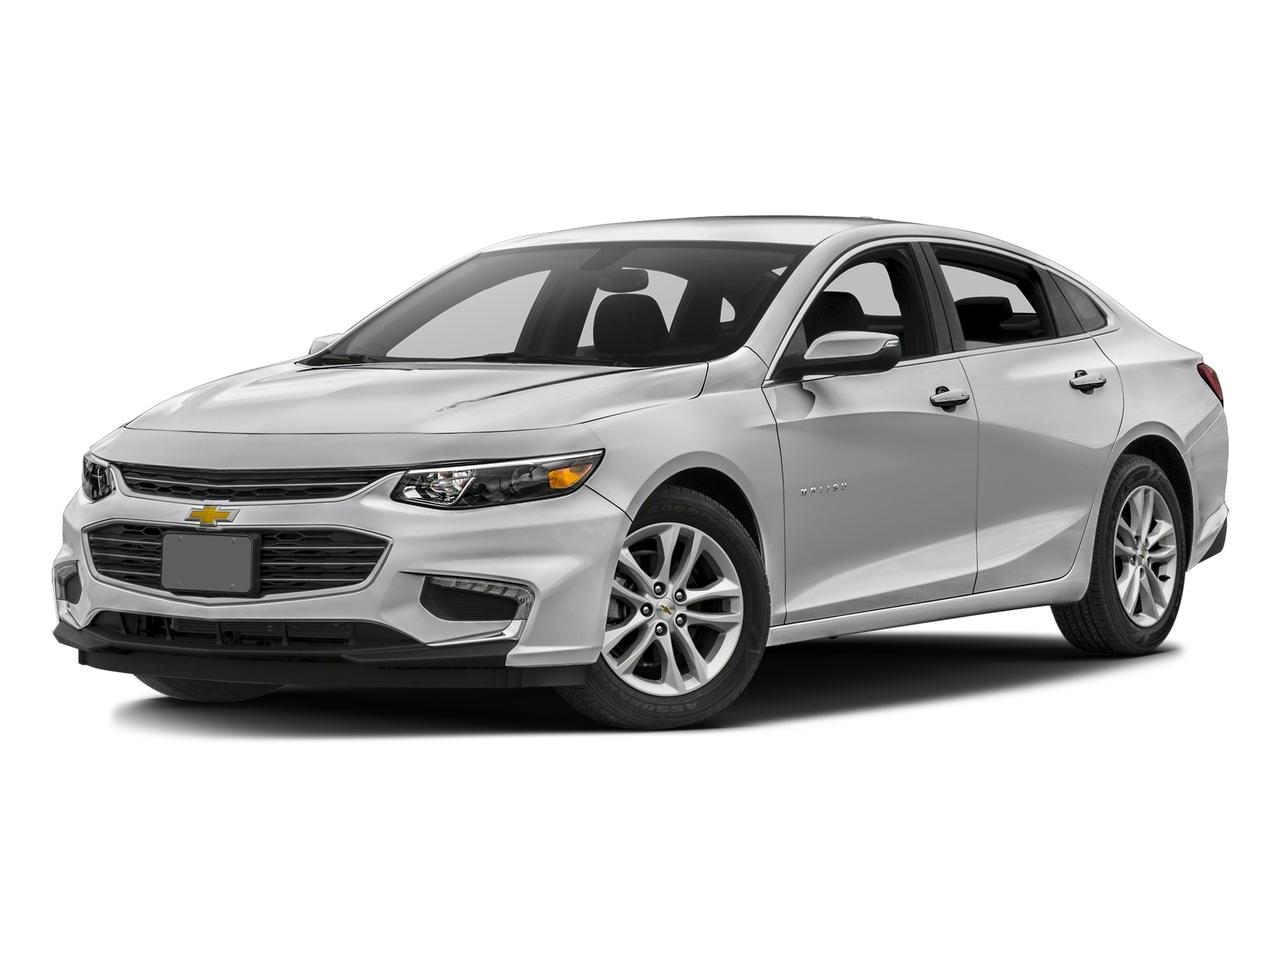 2017 Chevrolet Malibu Vehicle Photo in Novato, CA 94945